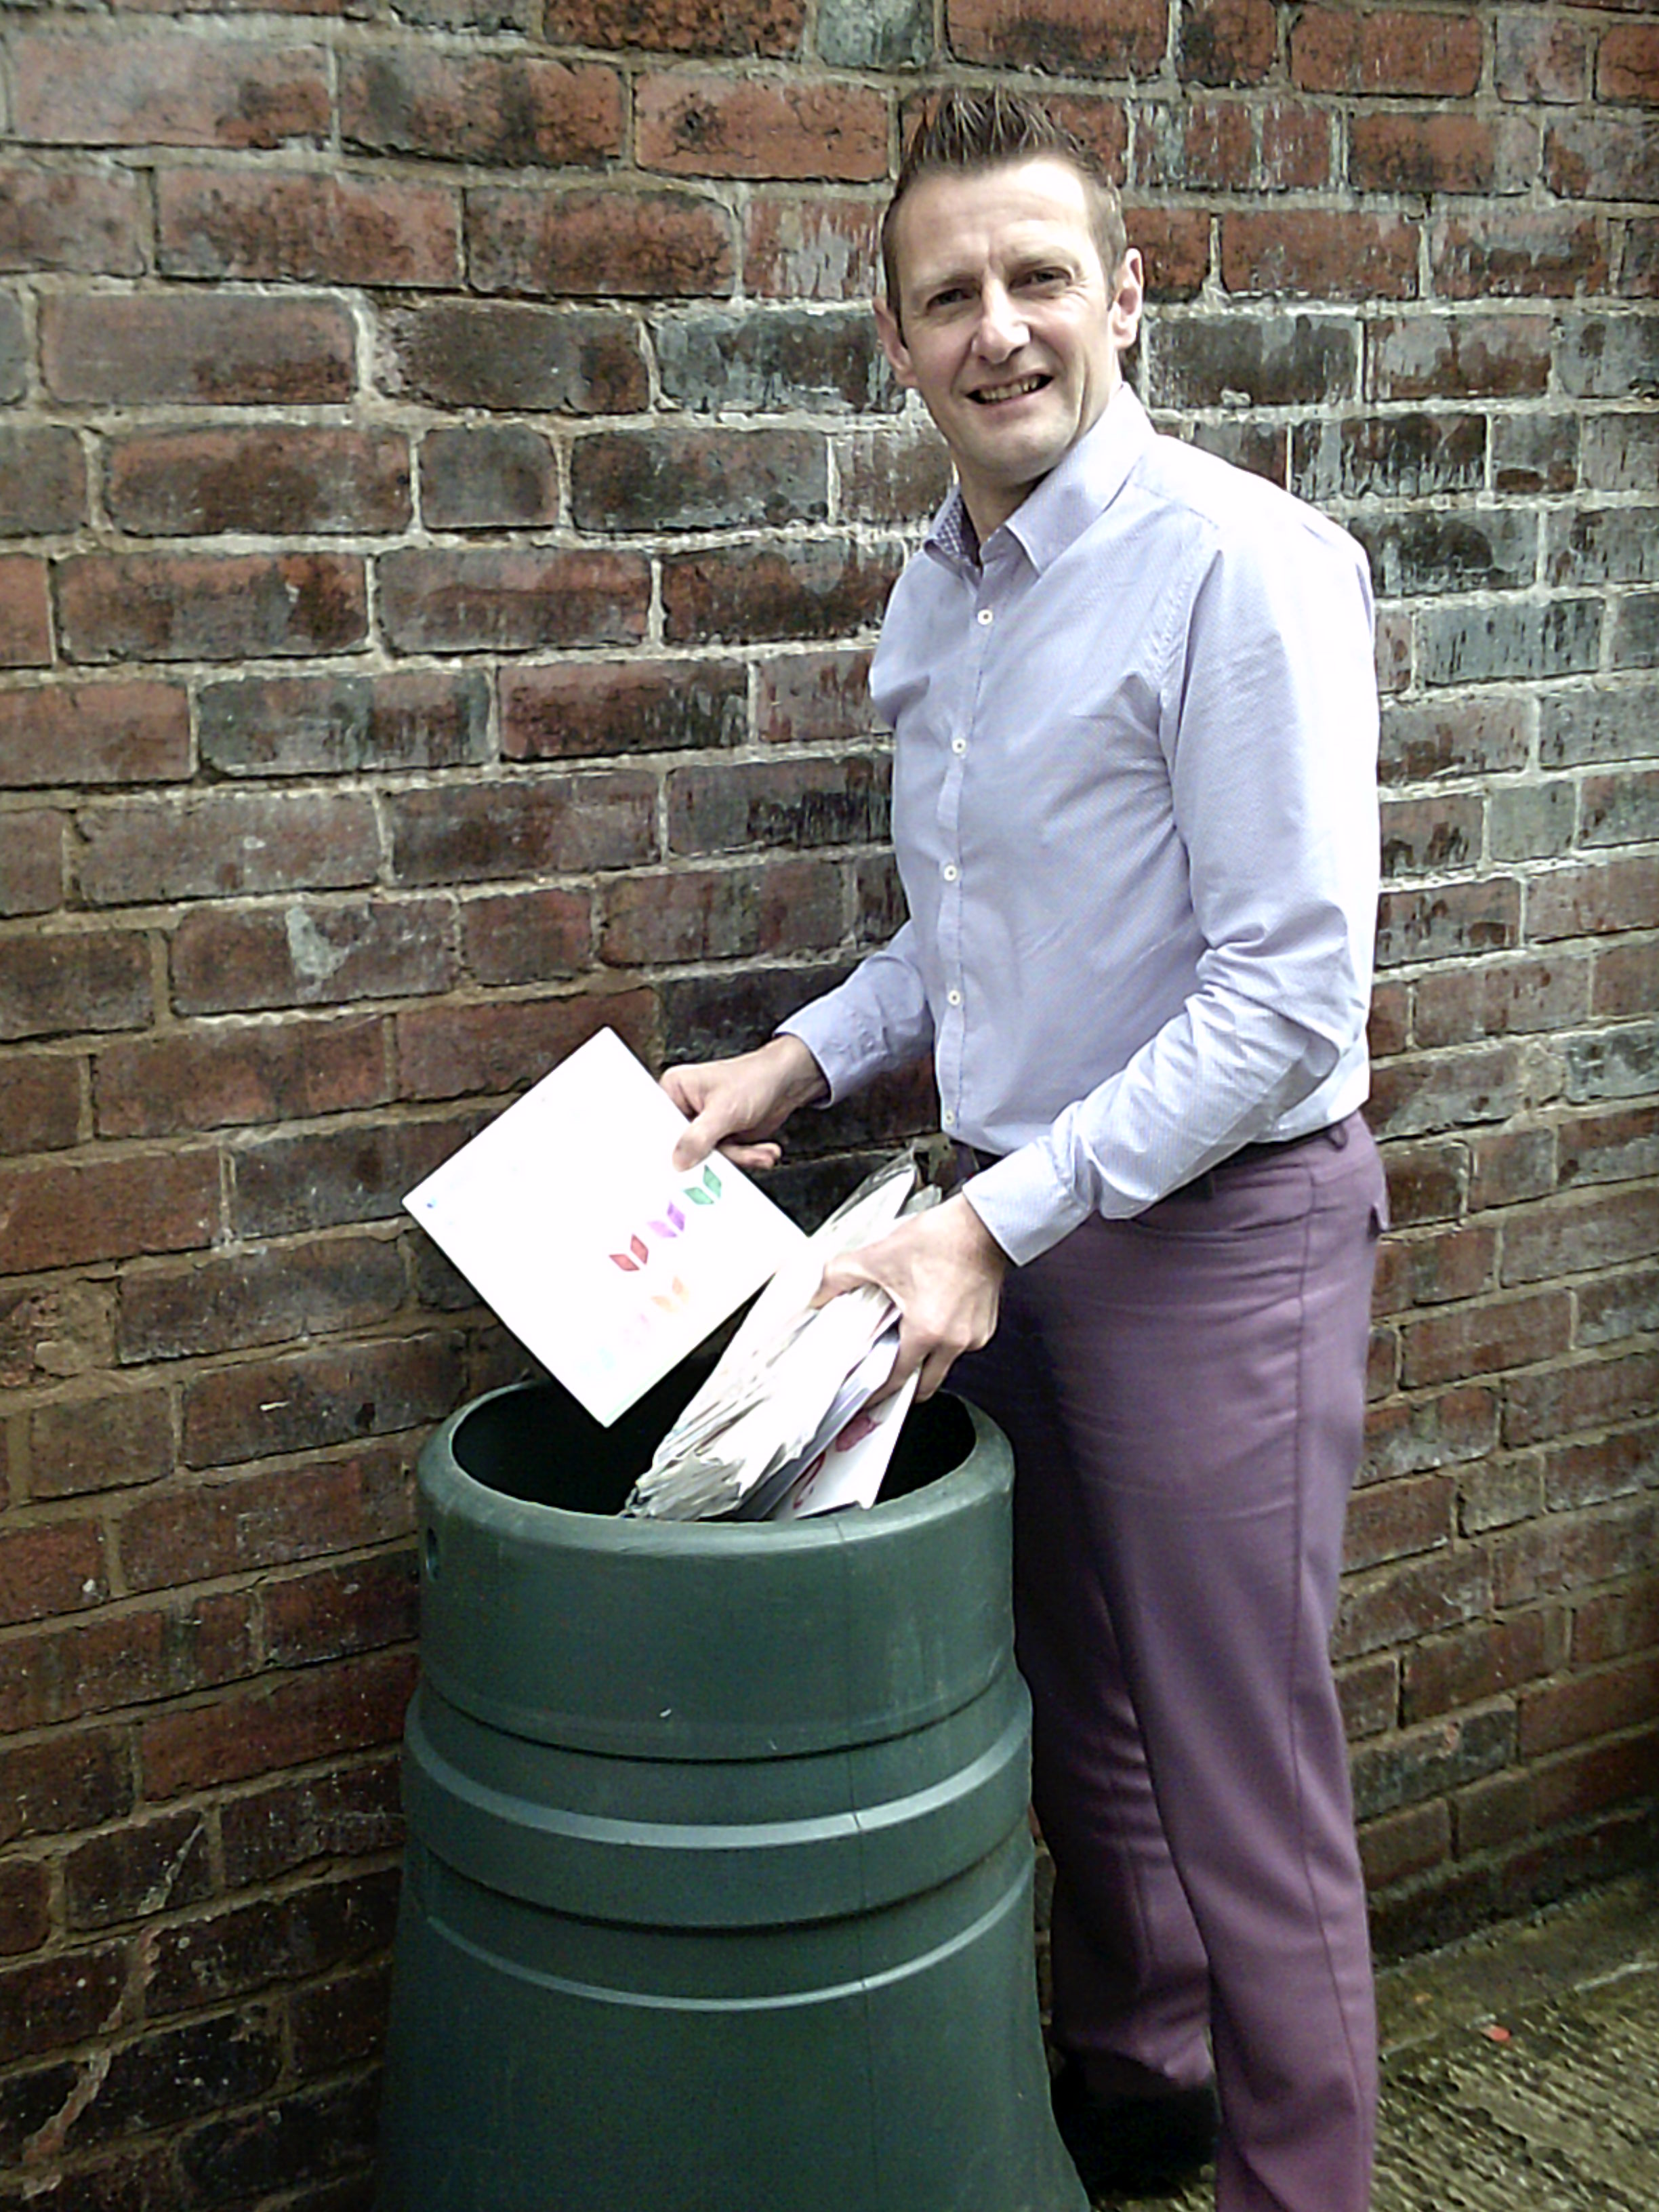 Above: Tony Lorriman, md of Loxleys at his home composting bin!